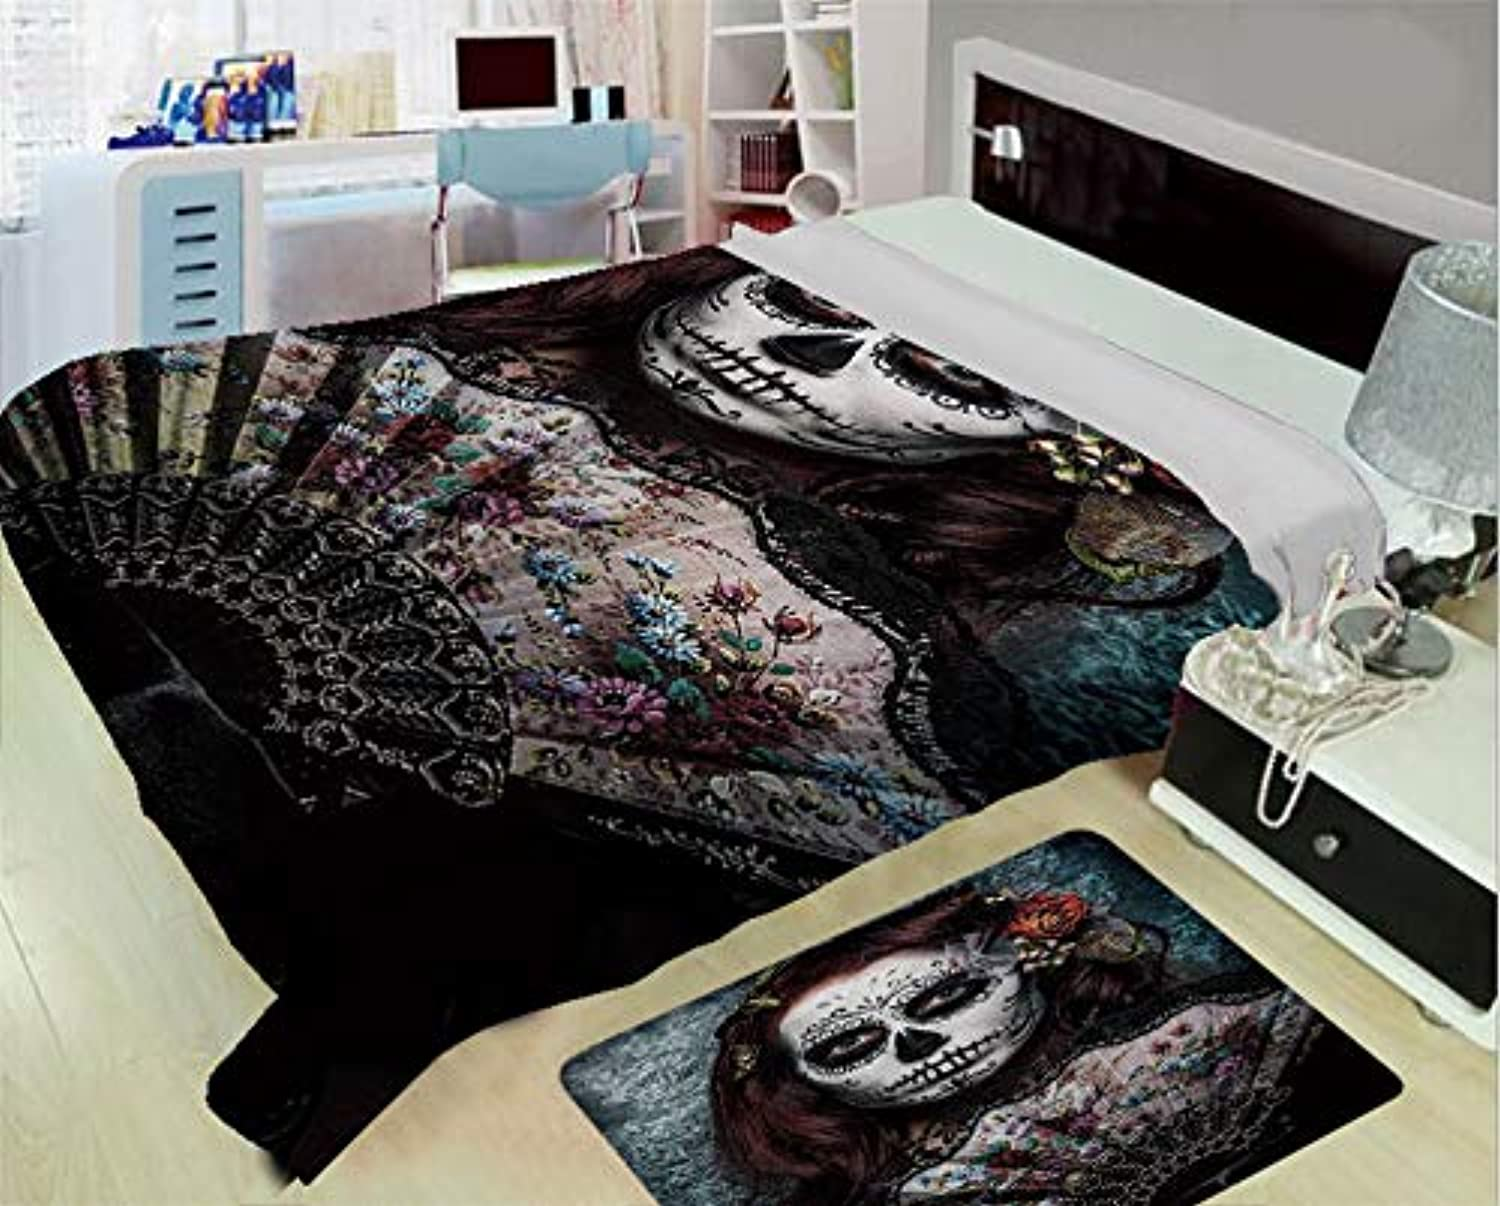 Creative Flannel Blanket for Home Warming,Day of The Dead Decor,Make up Artist Girl with Dead Skull Scary Mask pinks Print,Cadet bluee Maroon,One Side Printing,Excess Value